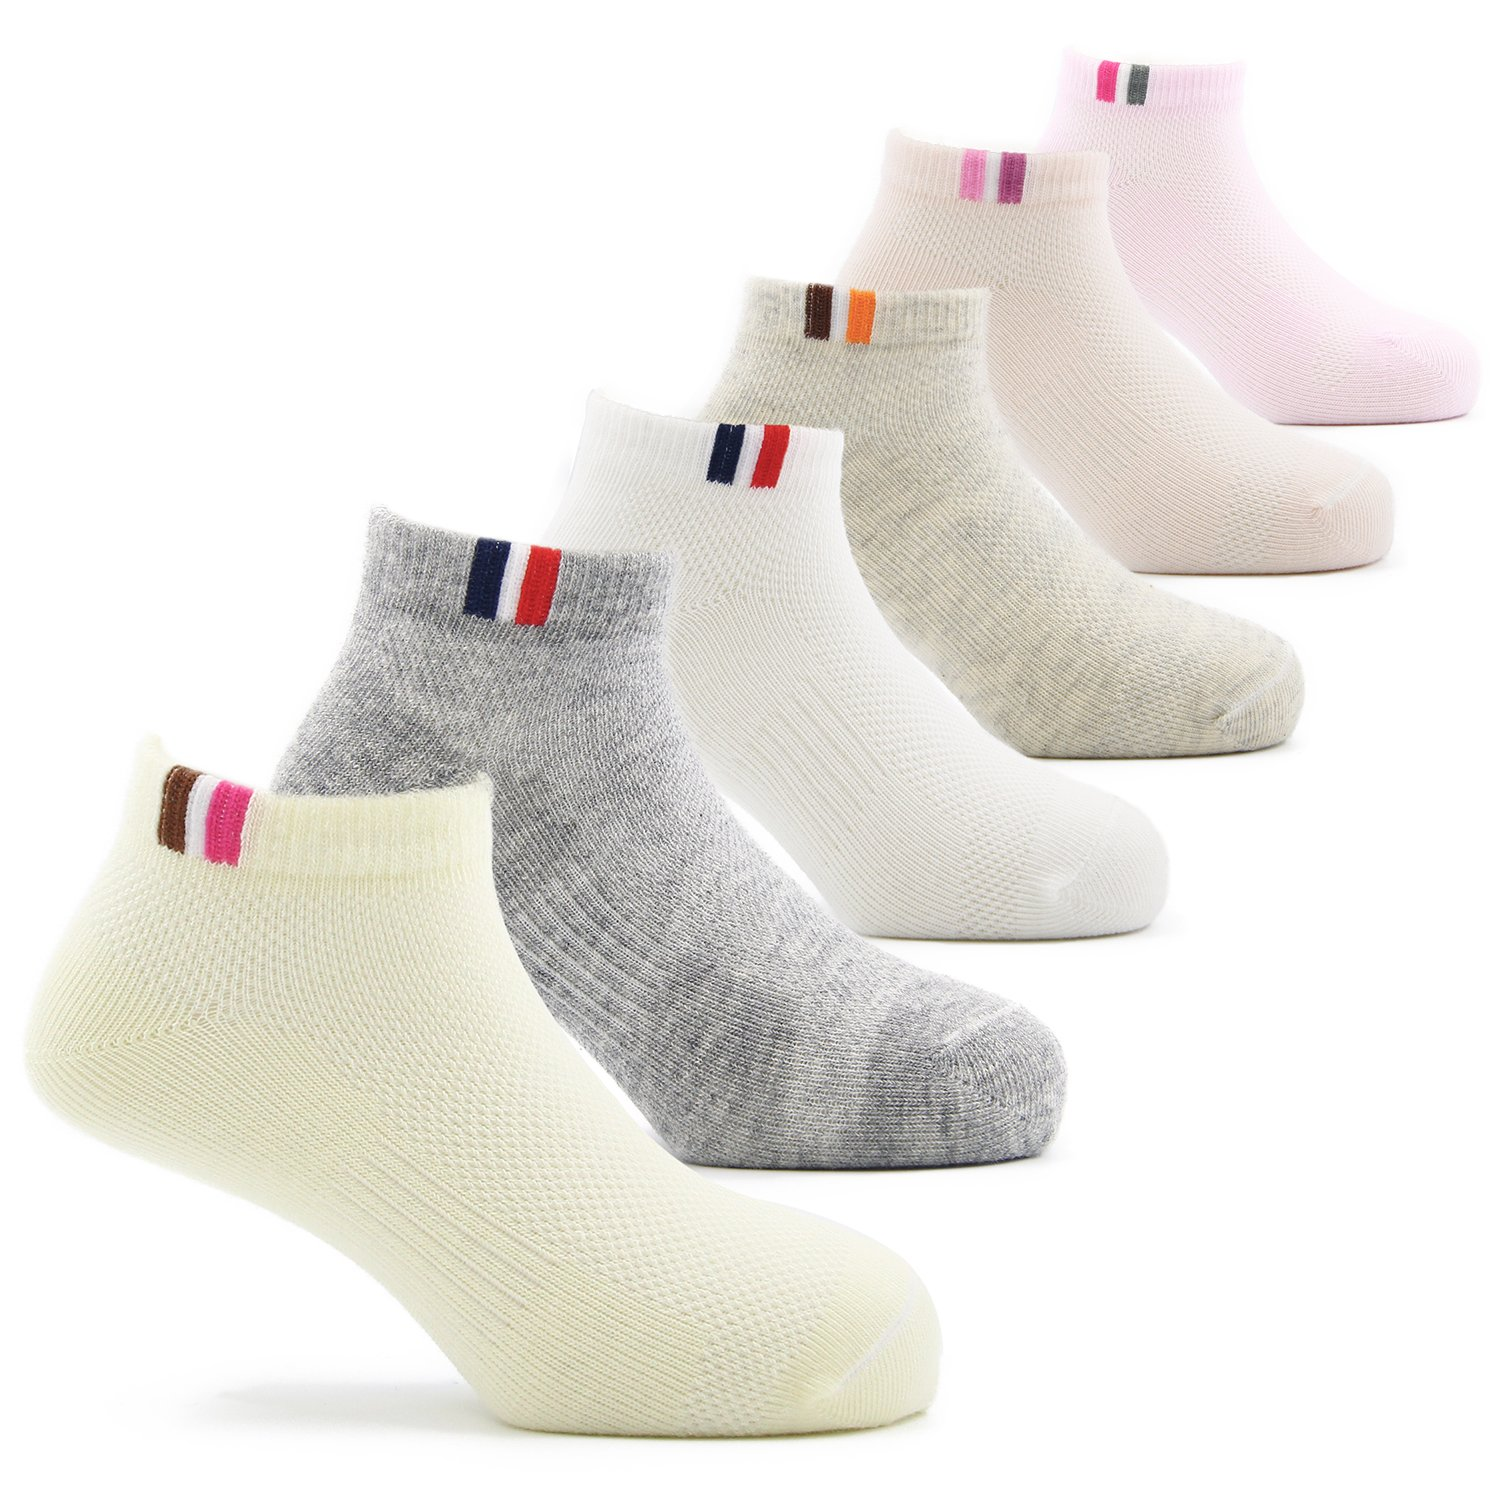 Toddler Girls Cotton Ankle Socks Kids Short Socks 6 Pack 3T